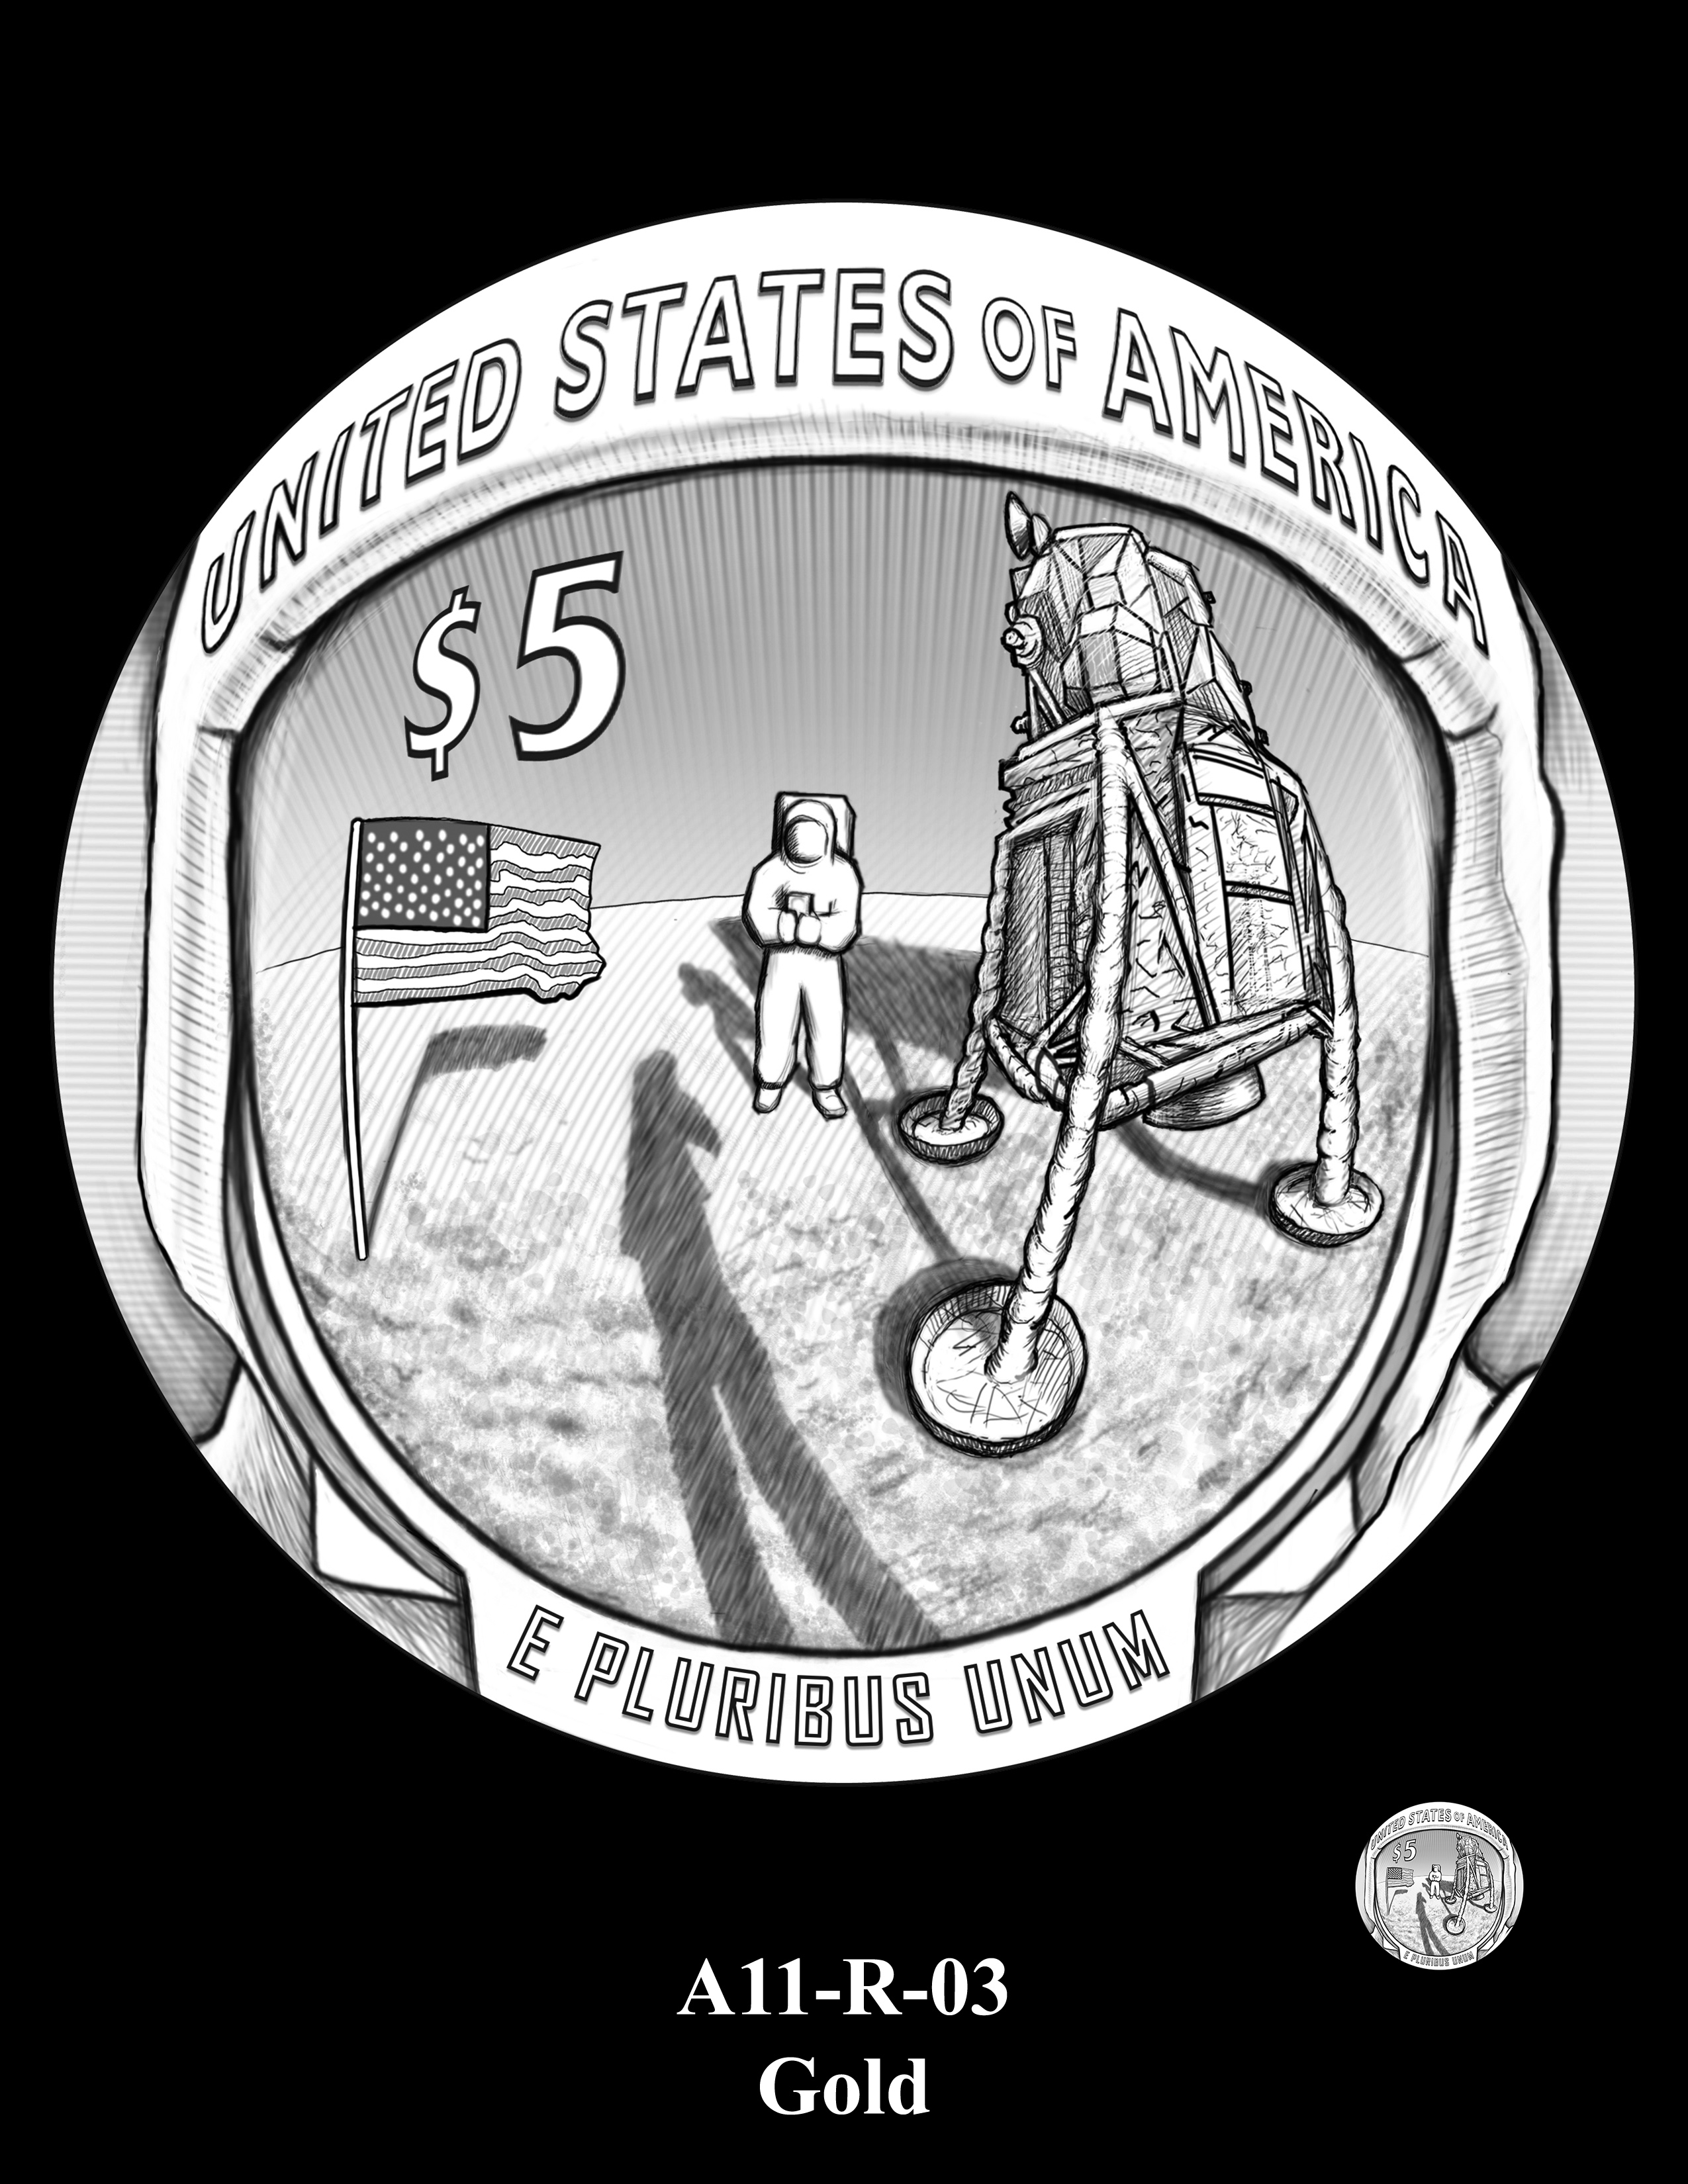 Reverse Designs For 2019 Apollo 11 Coins Chosen World